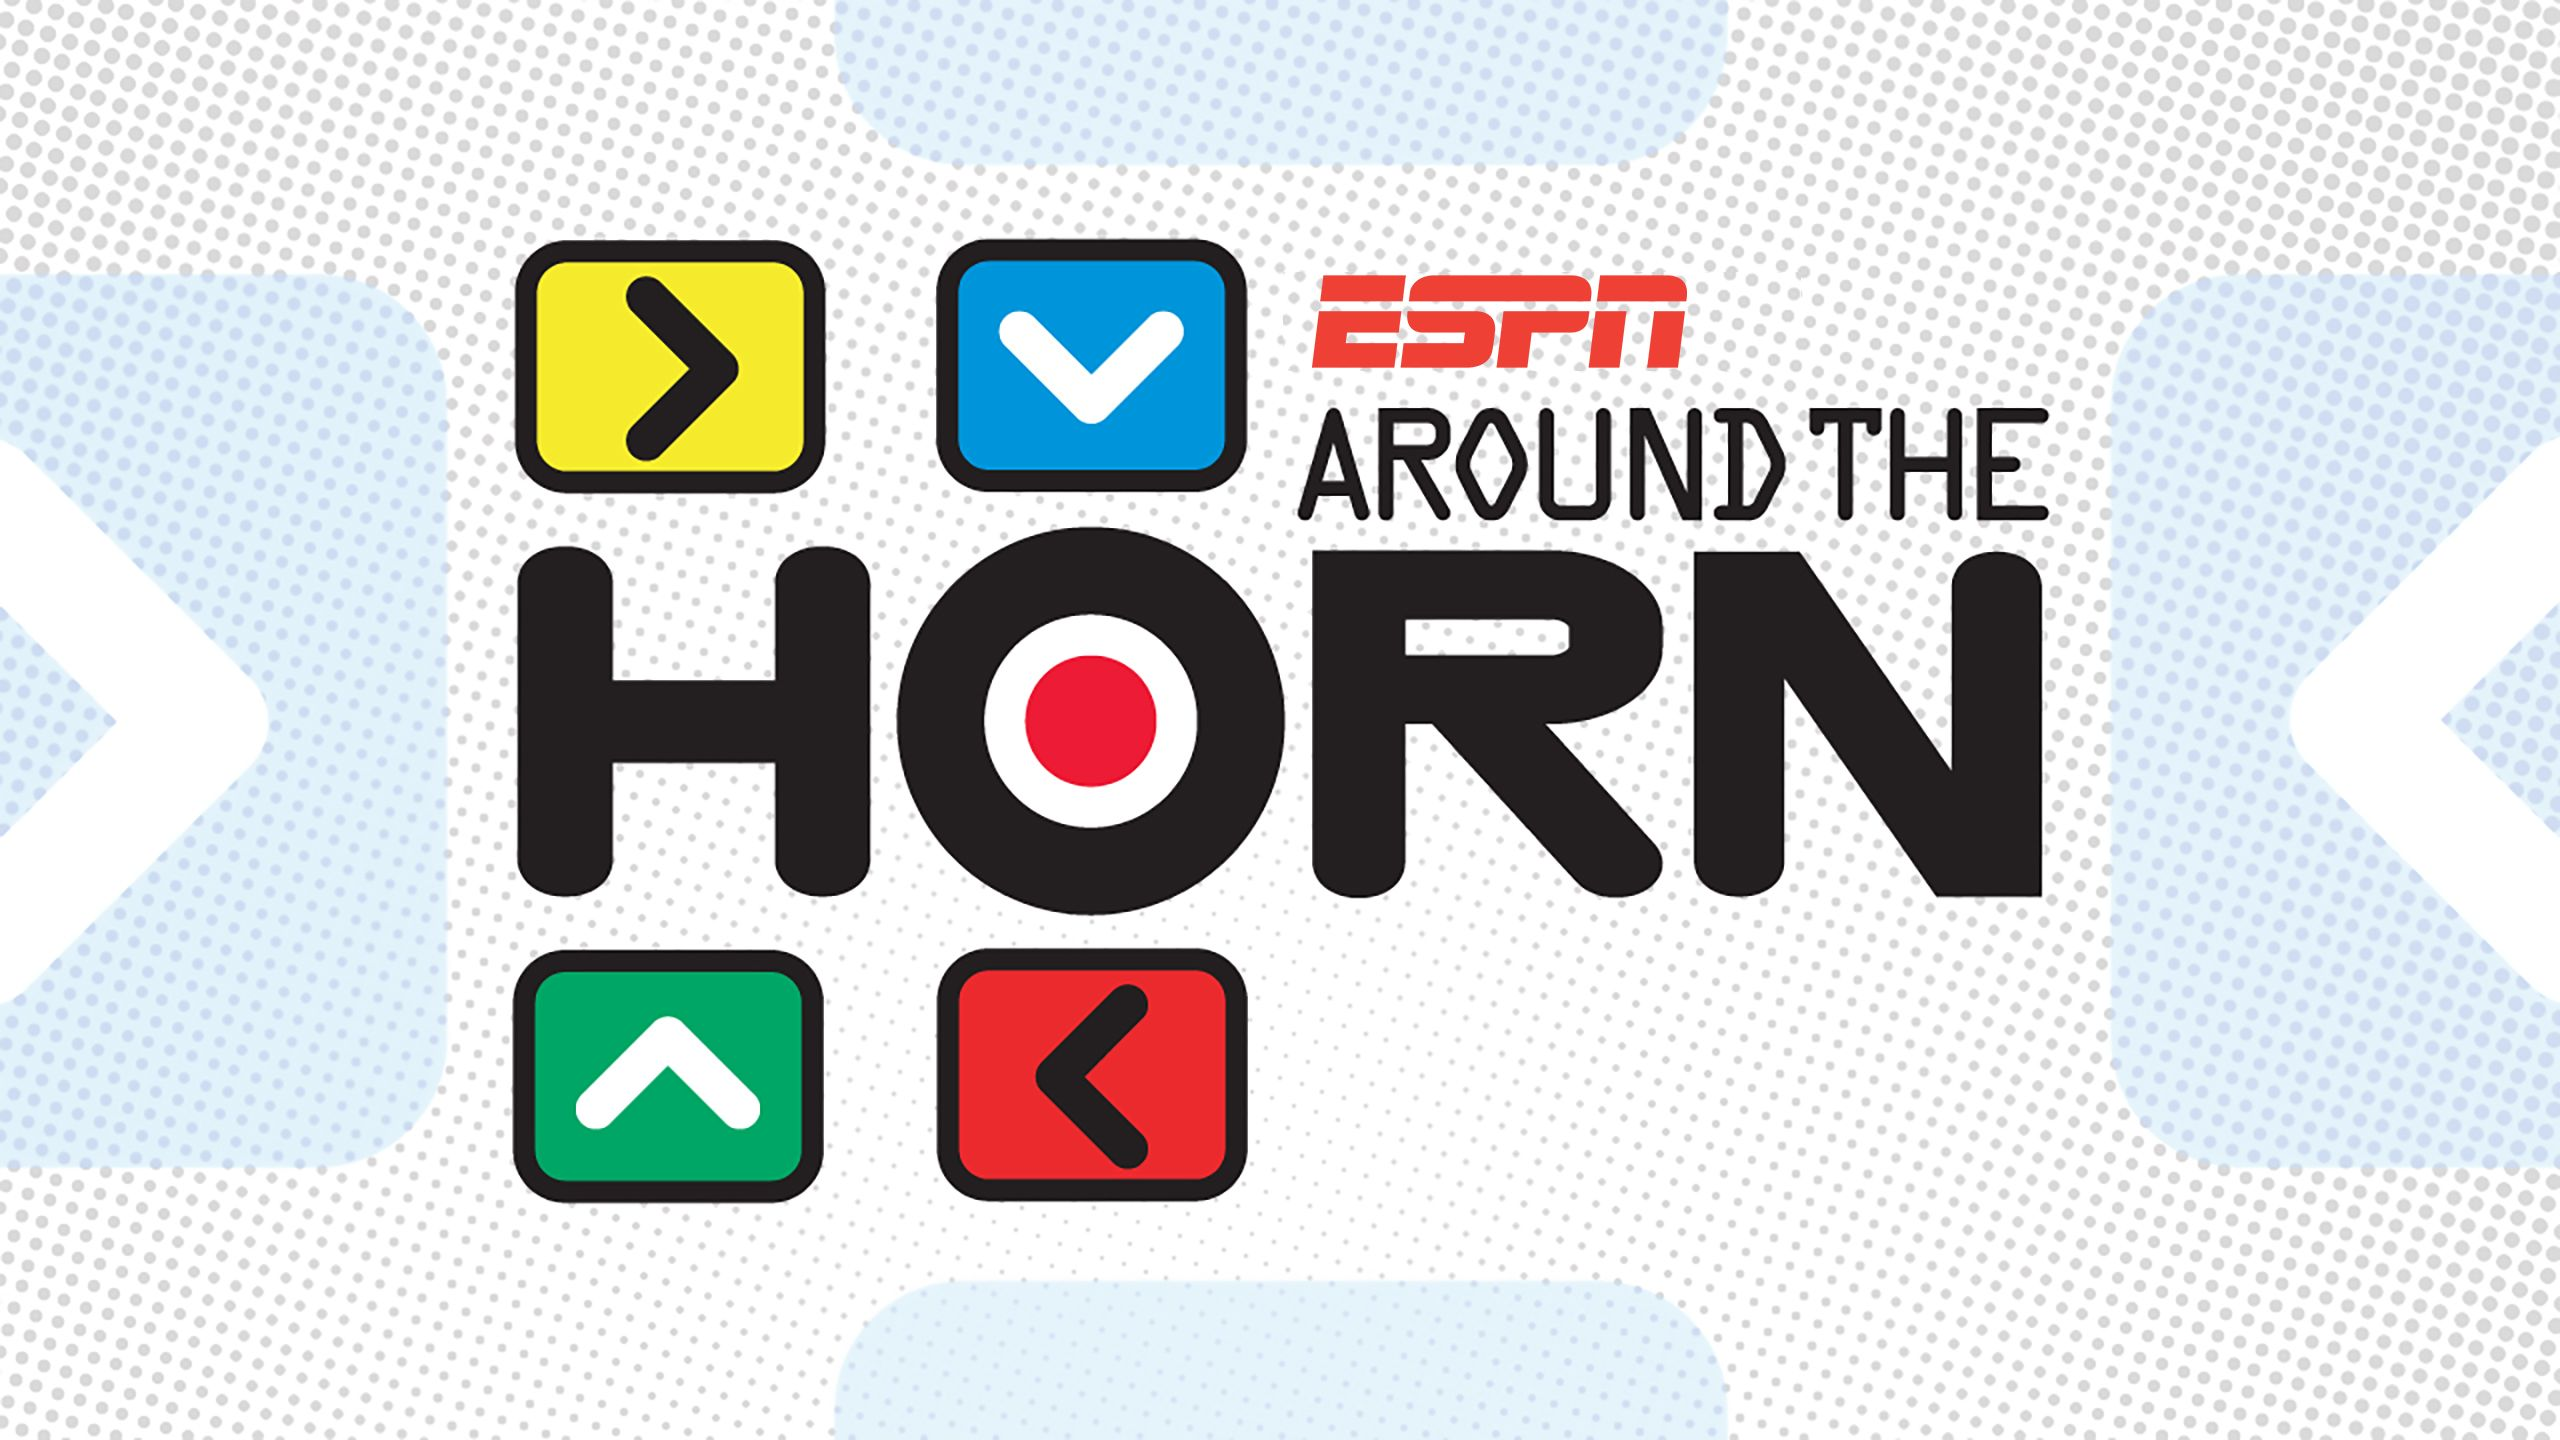 Wed, 4/18 - Around The Horn